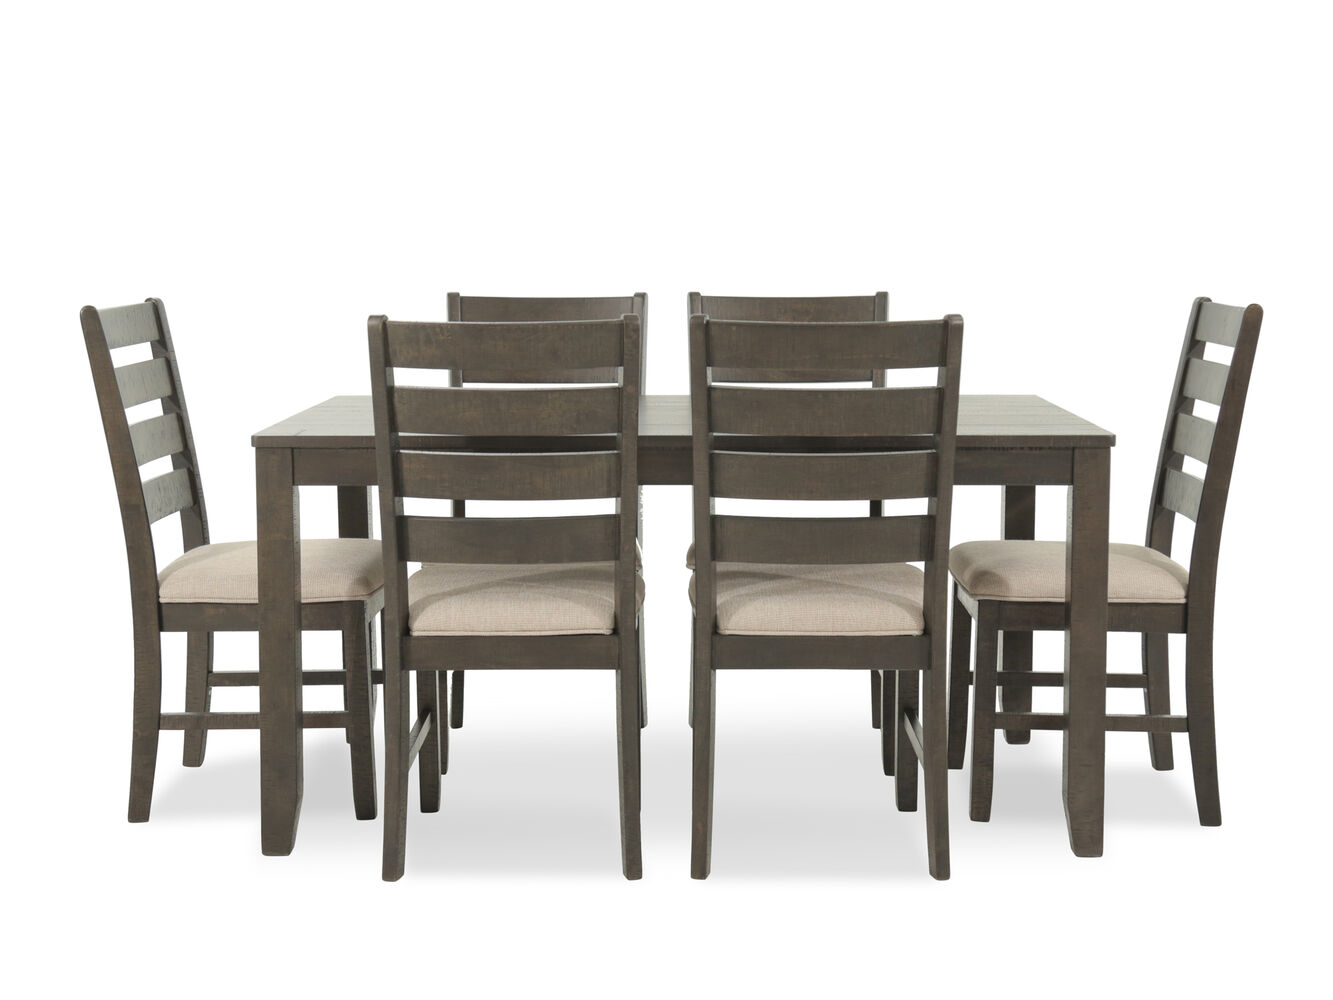 Mathis Brothers Dining Room Table home decor Xshareus : ASH D39742501 from www.xshare.us size 1333 x 1000 jpeg 87kB